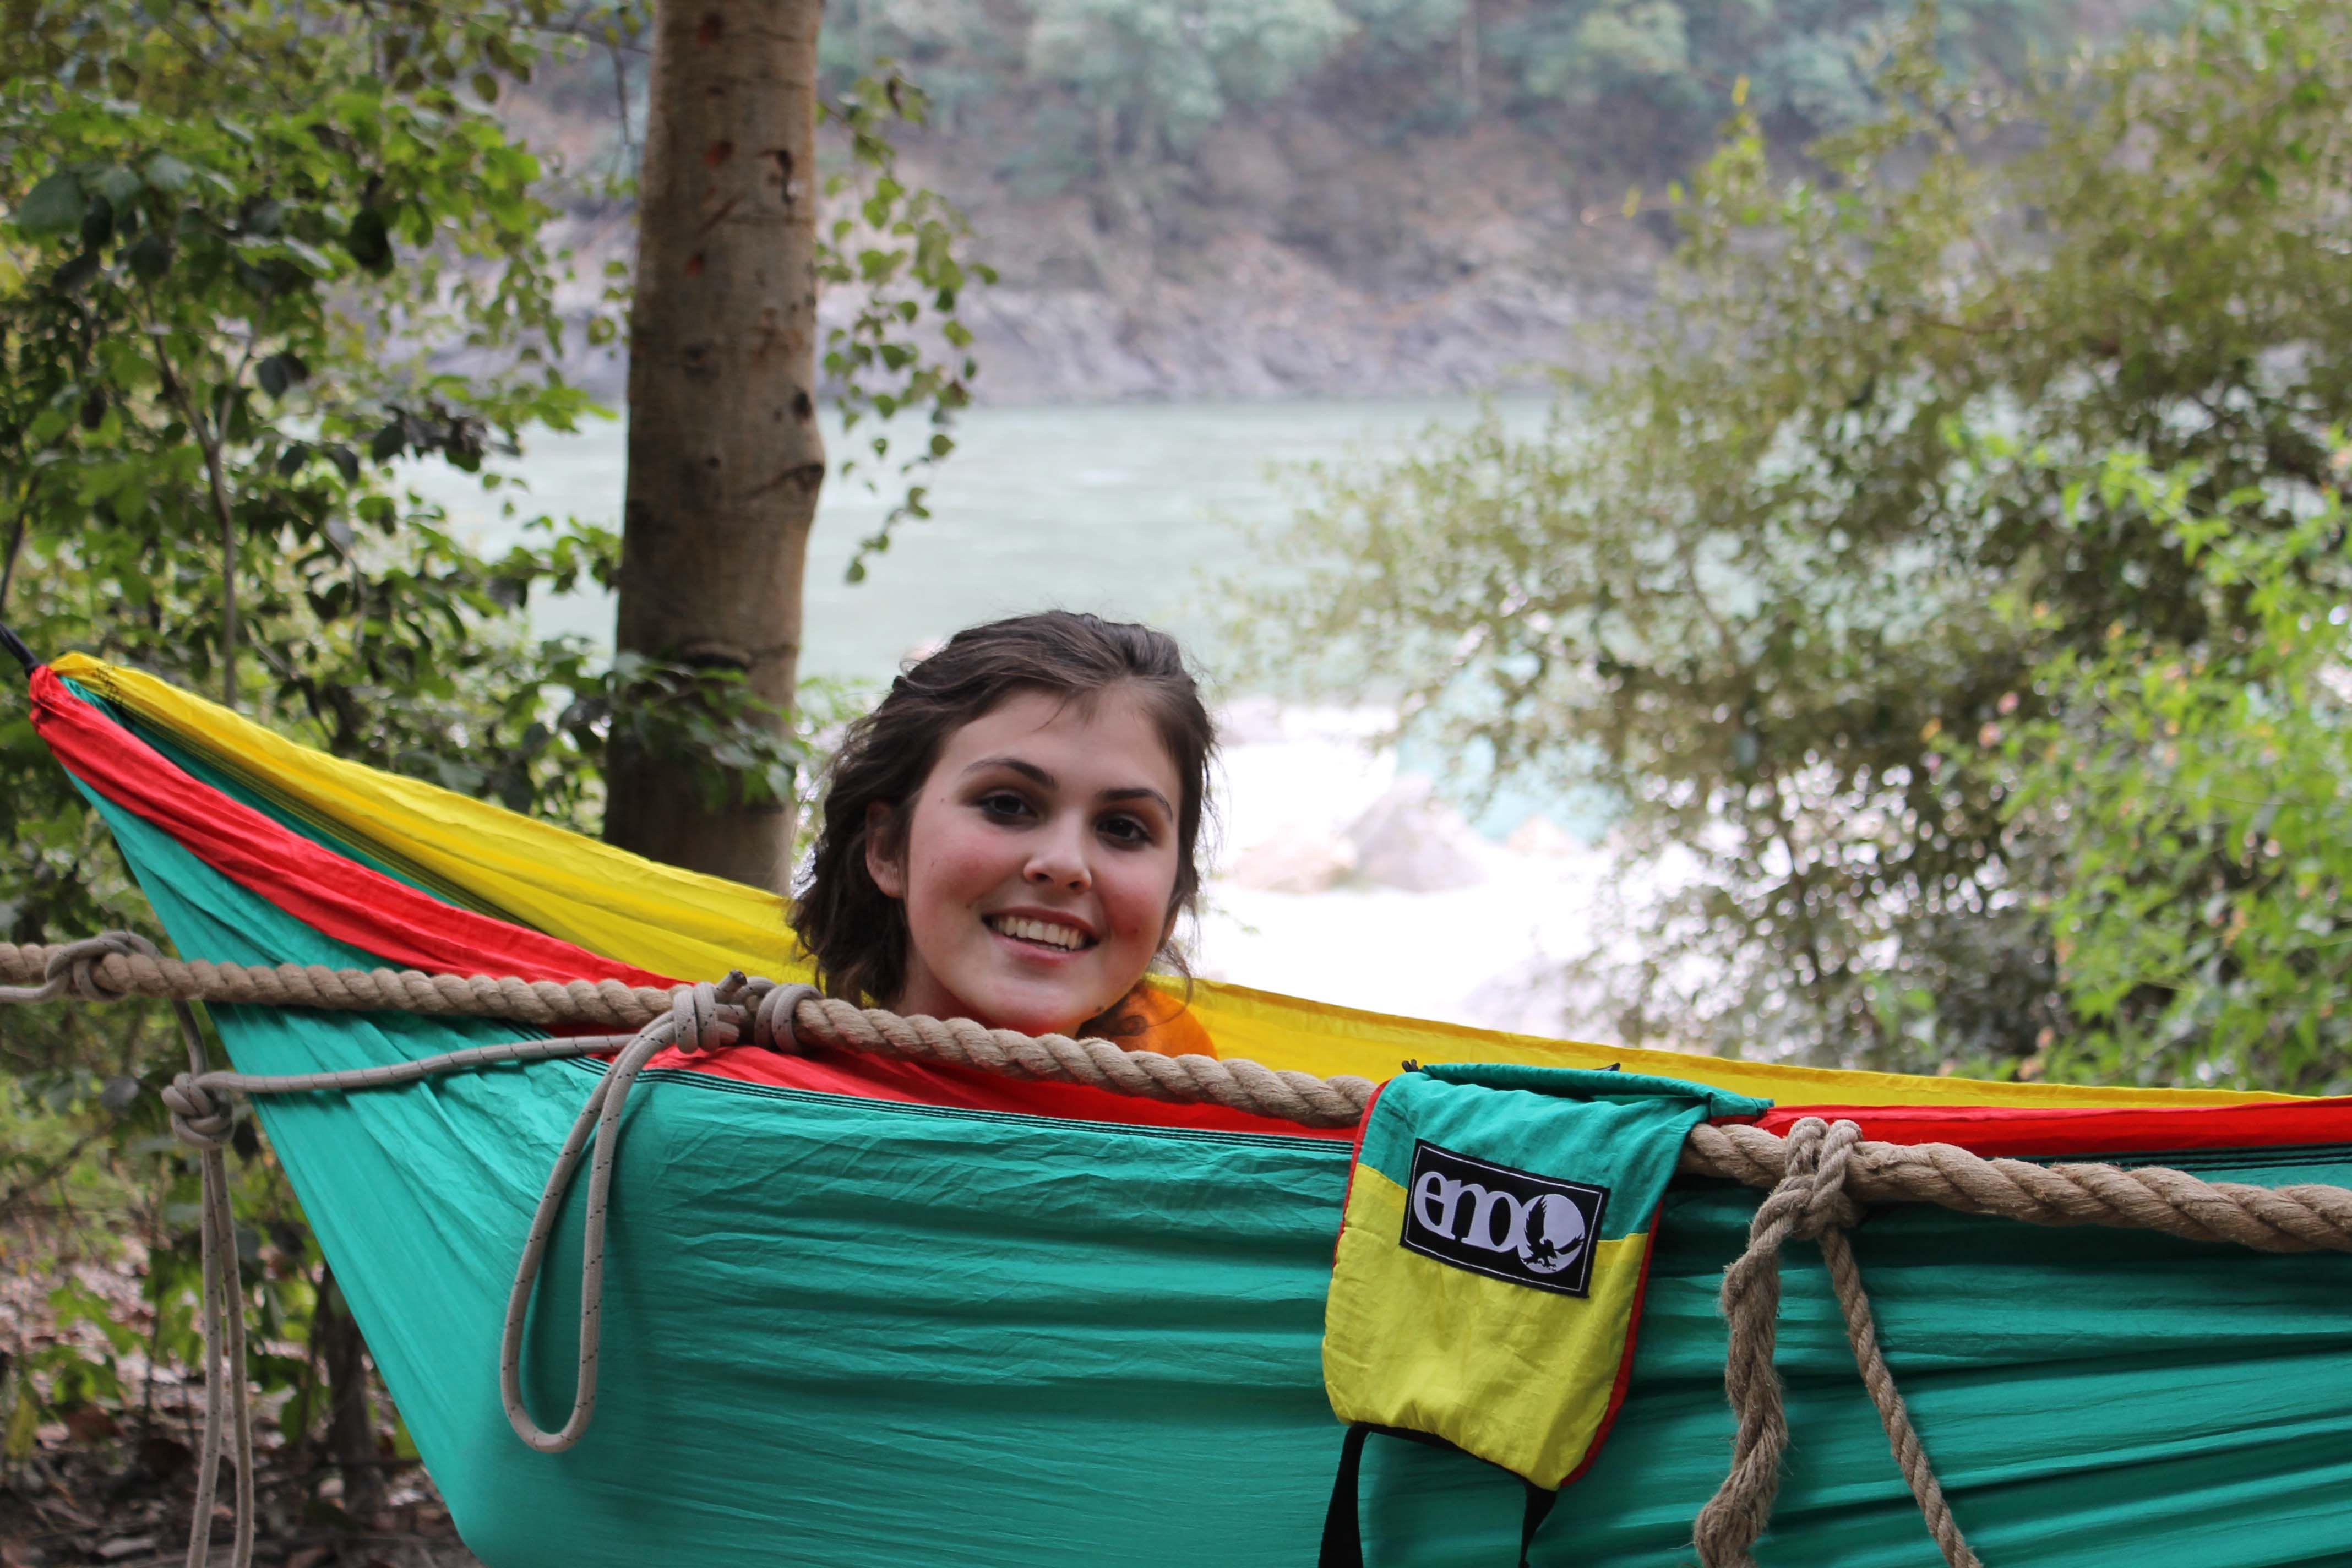 outdoor gear favorite and doublenest eno on singlenest pin hang to way trail out hammocks hammock our review the straps